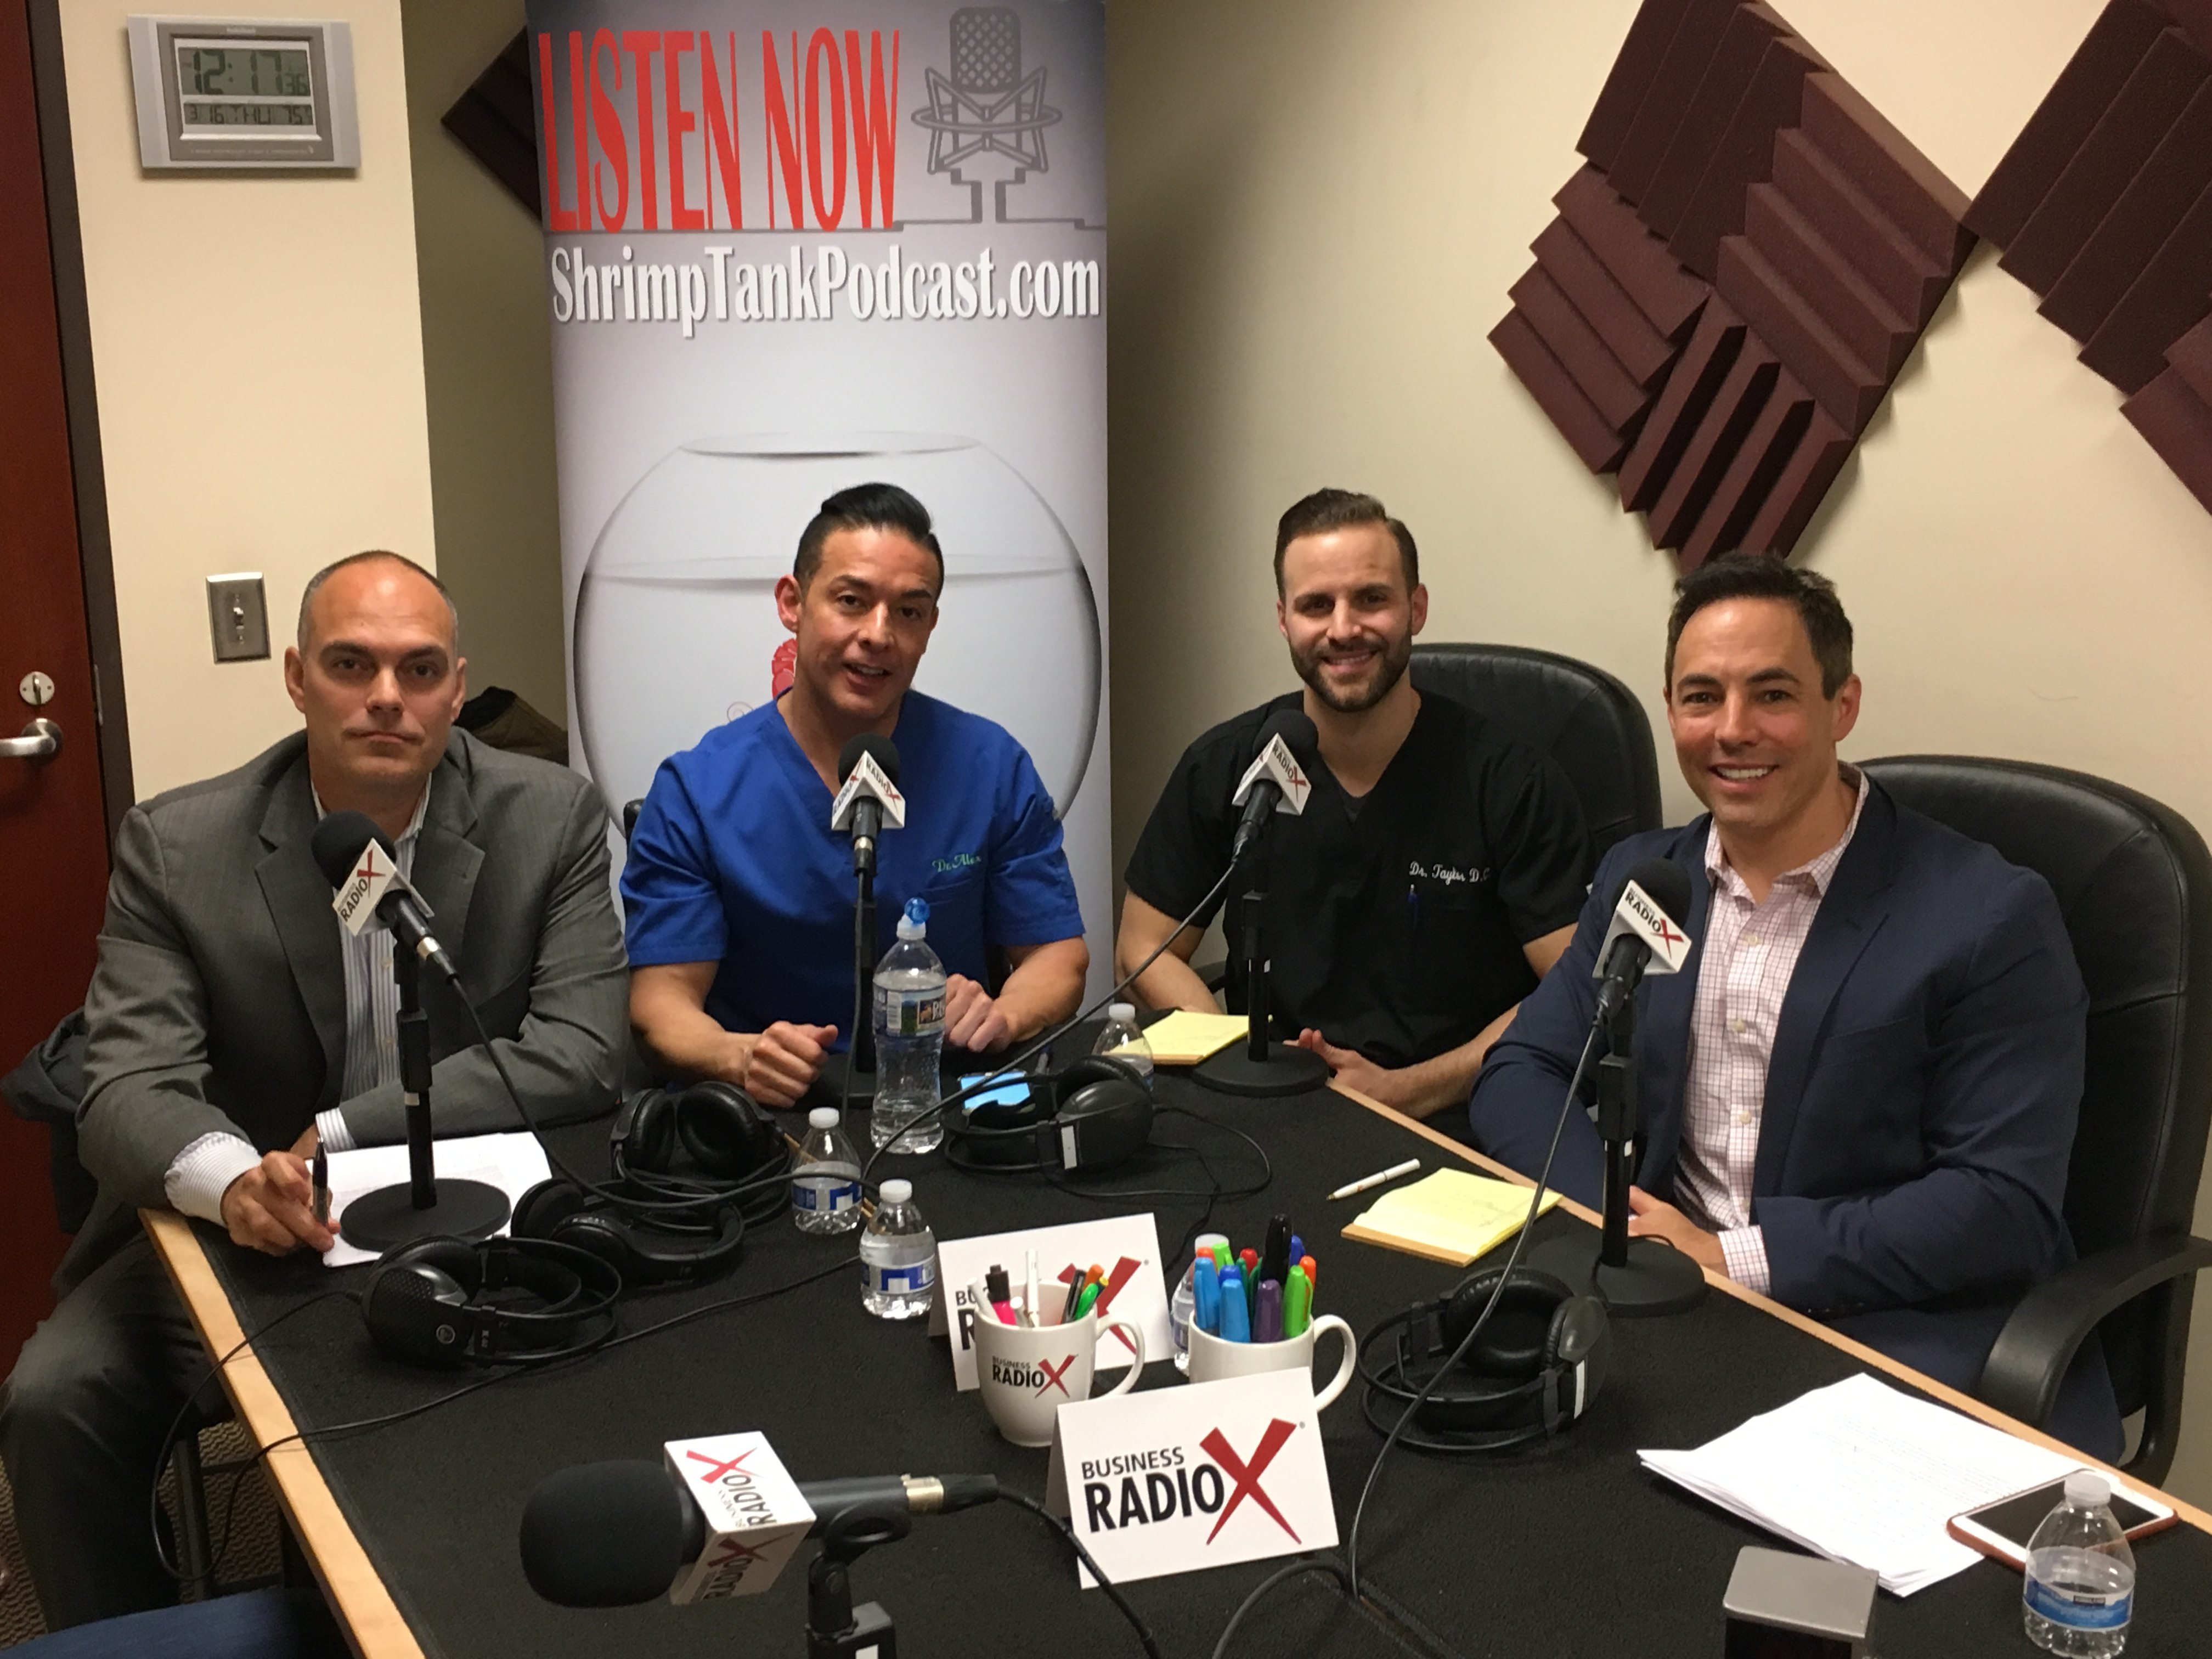 Dr. Alex Roig – Owner of Dr. Weight Loss of Atlanta & Dr. Craig Taylor – Owner of Taylor Chiropractic & Wellness